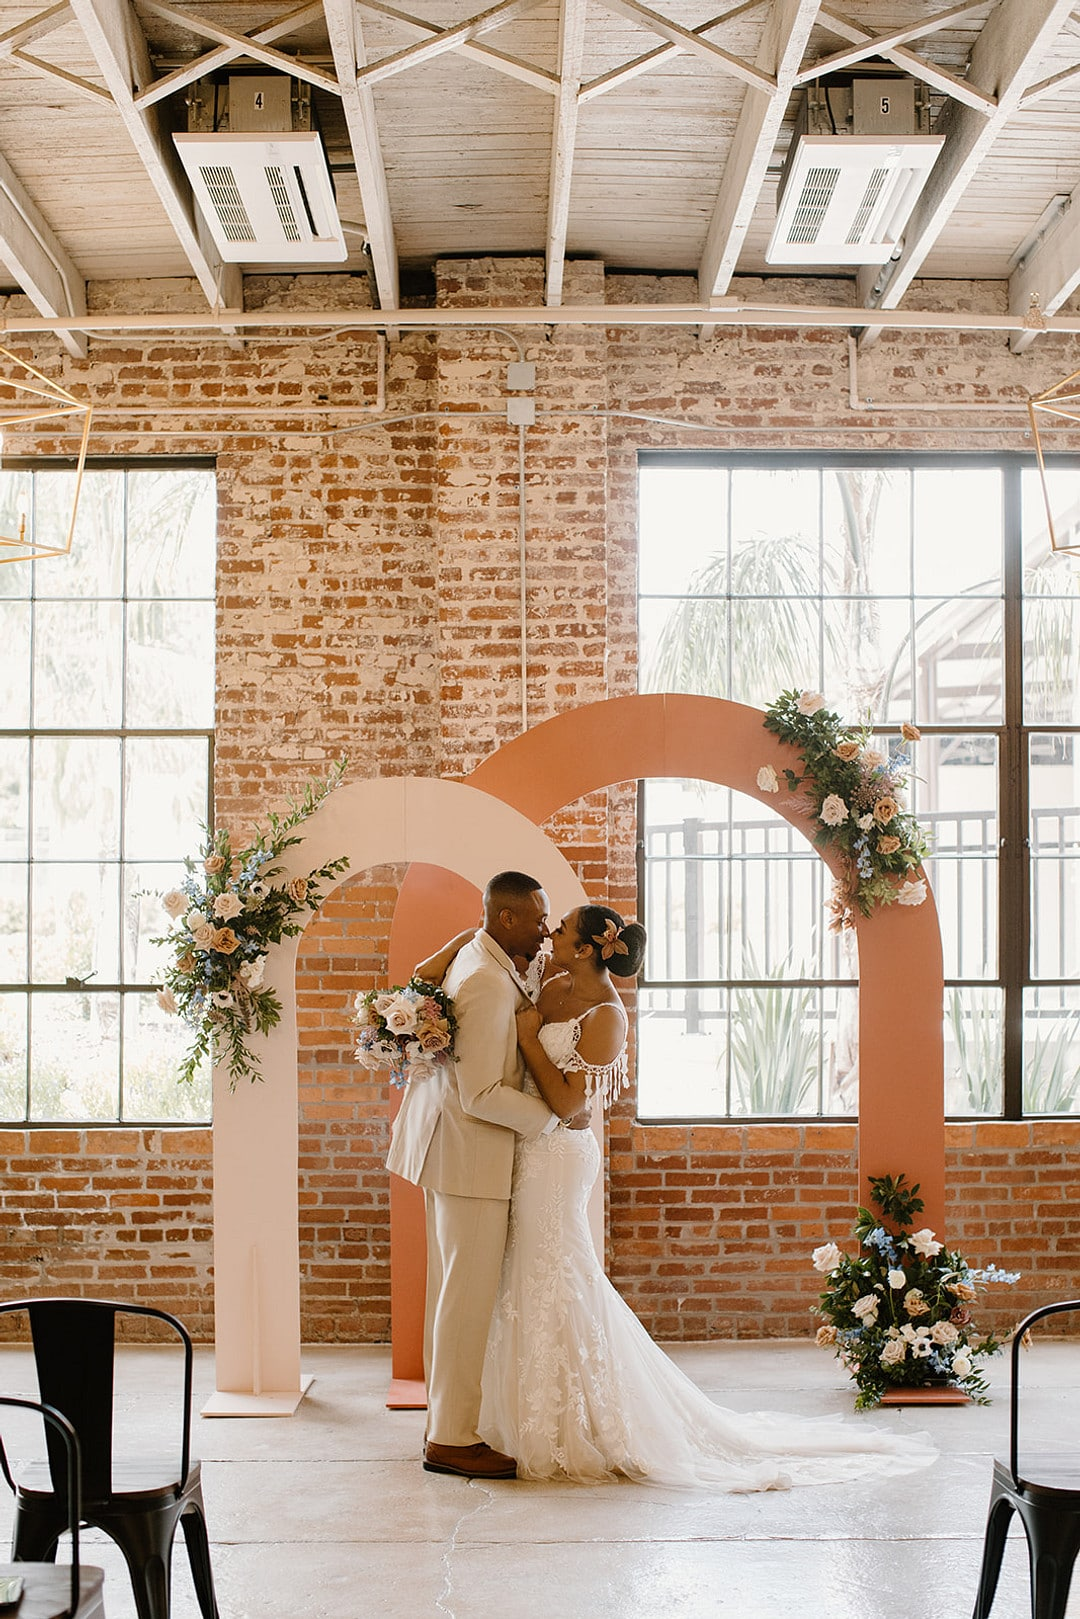 bride and groom holding each other at the end of the aisle in front of the two large pink arches for the urban loft wedding inspiration styled shoot.